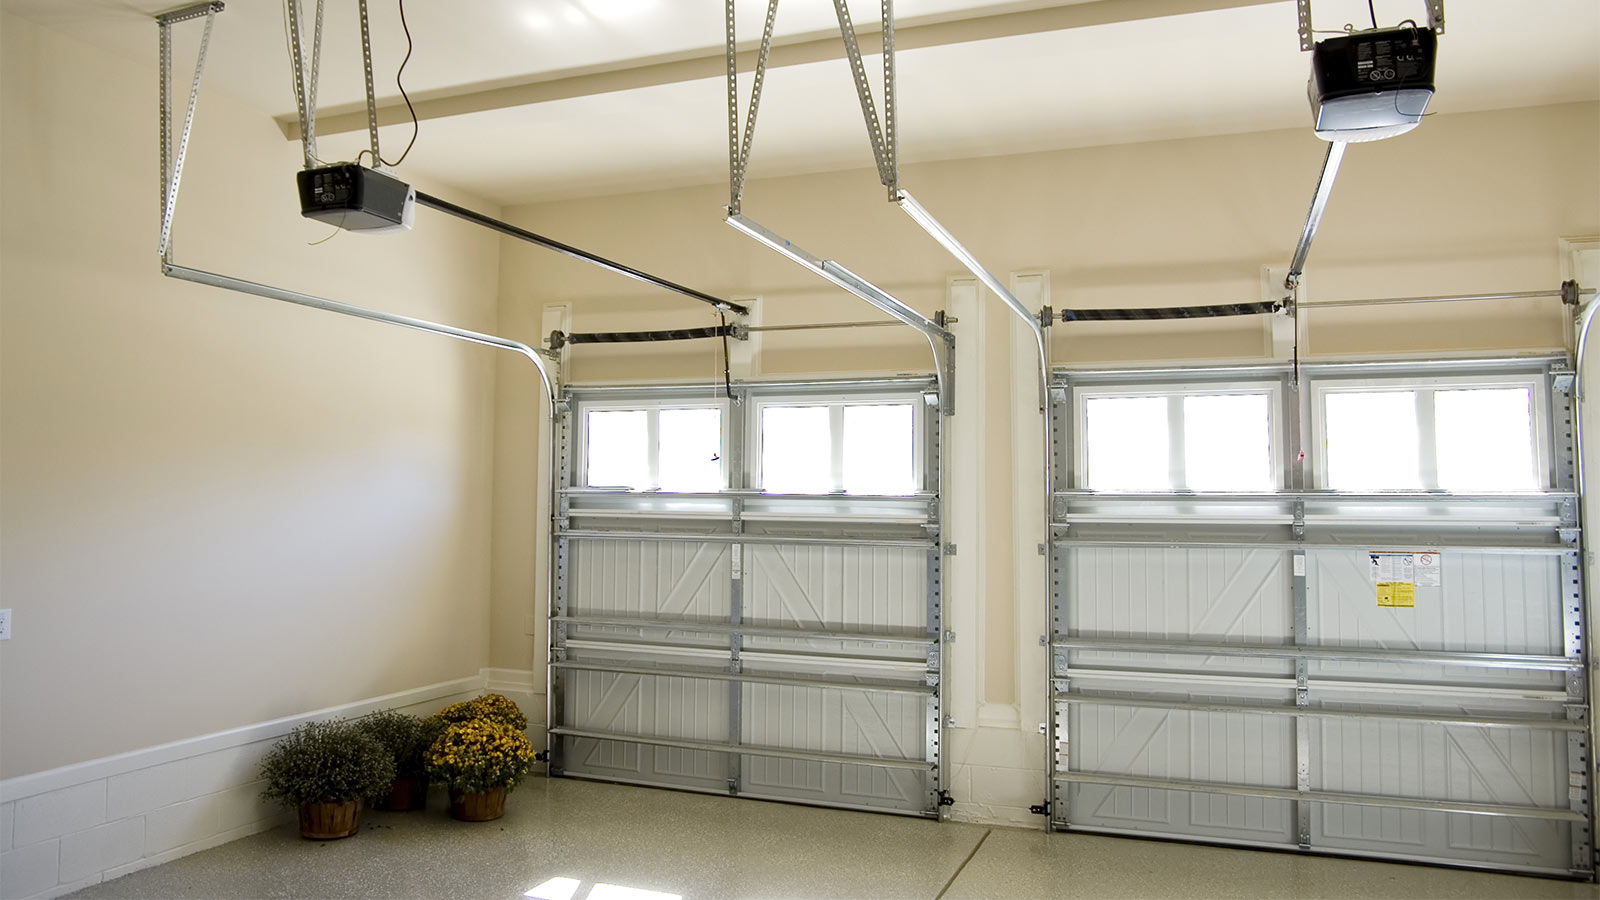 Sectional Garage Doors from High Speed Roller Shutters Berkshire suppliers.